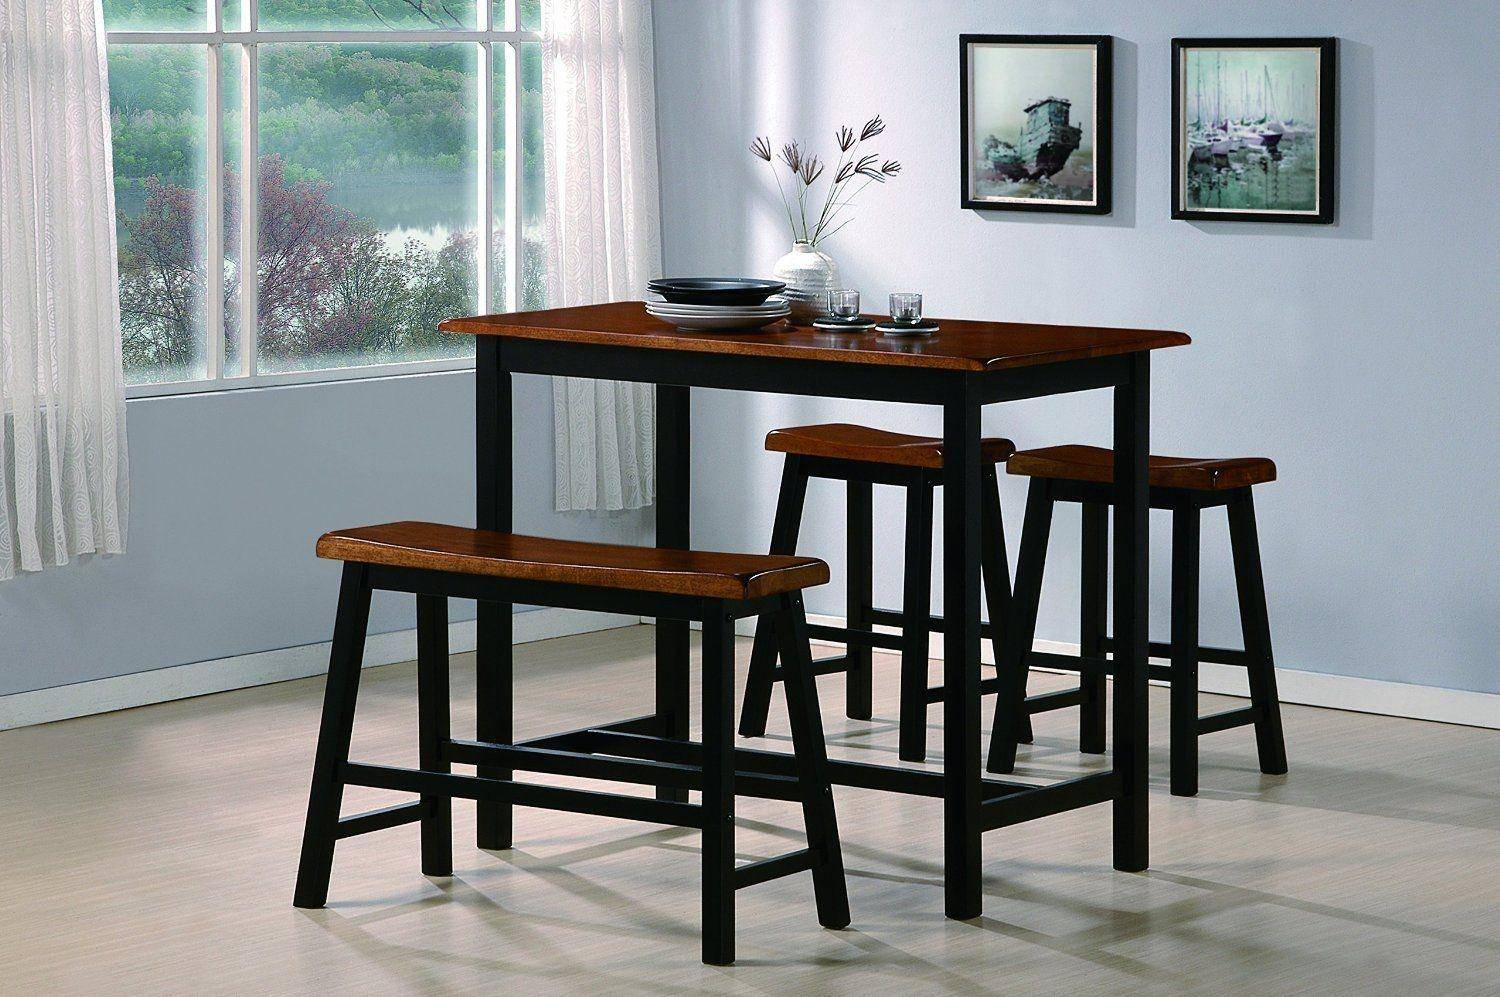 Crown Mark 2729 Tyler Country Style Dining Room Set W/ 2 Chairs & Bench 4Pcs